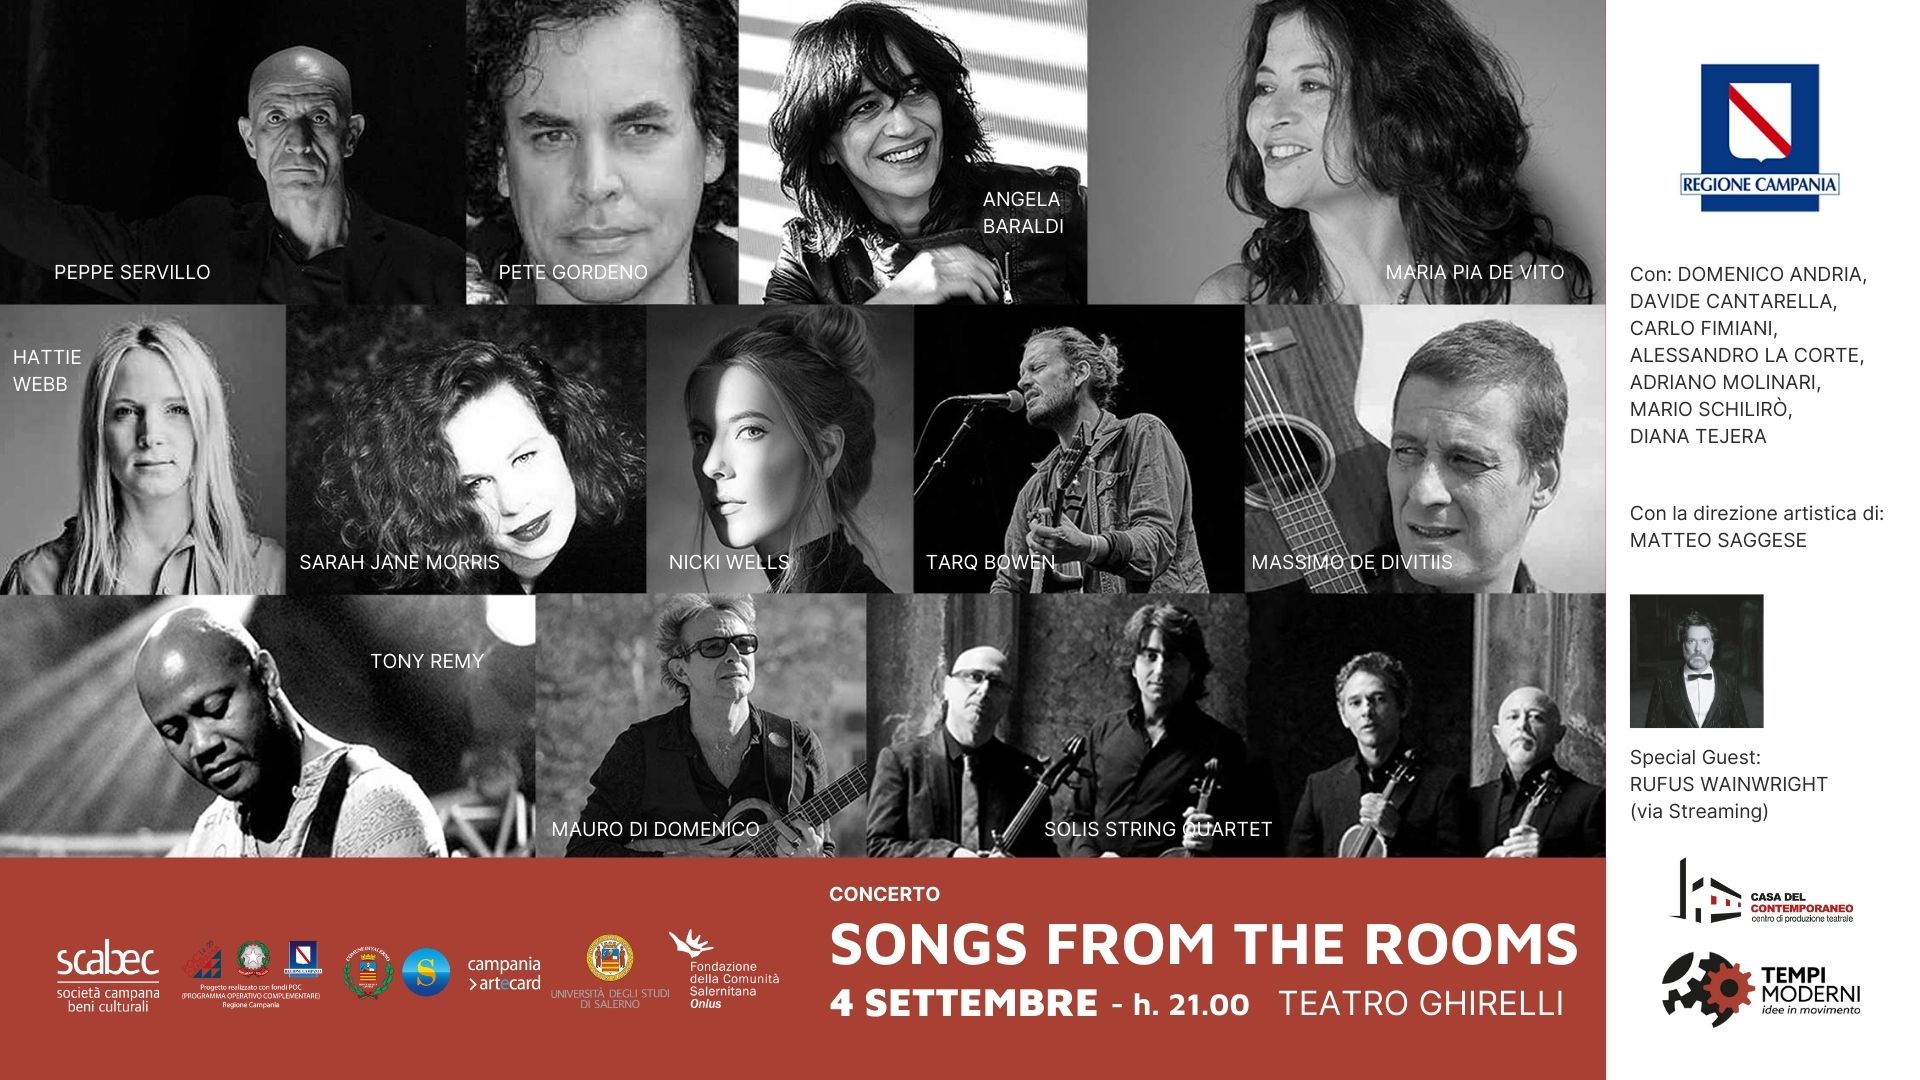 Songs from the rooms, evento del 4 settembre